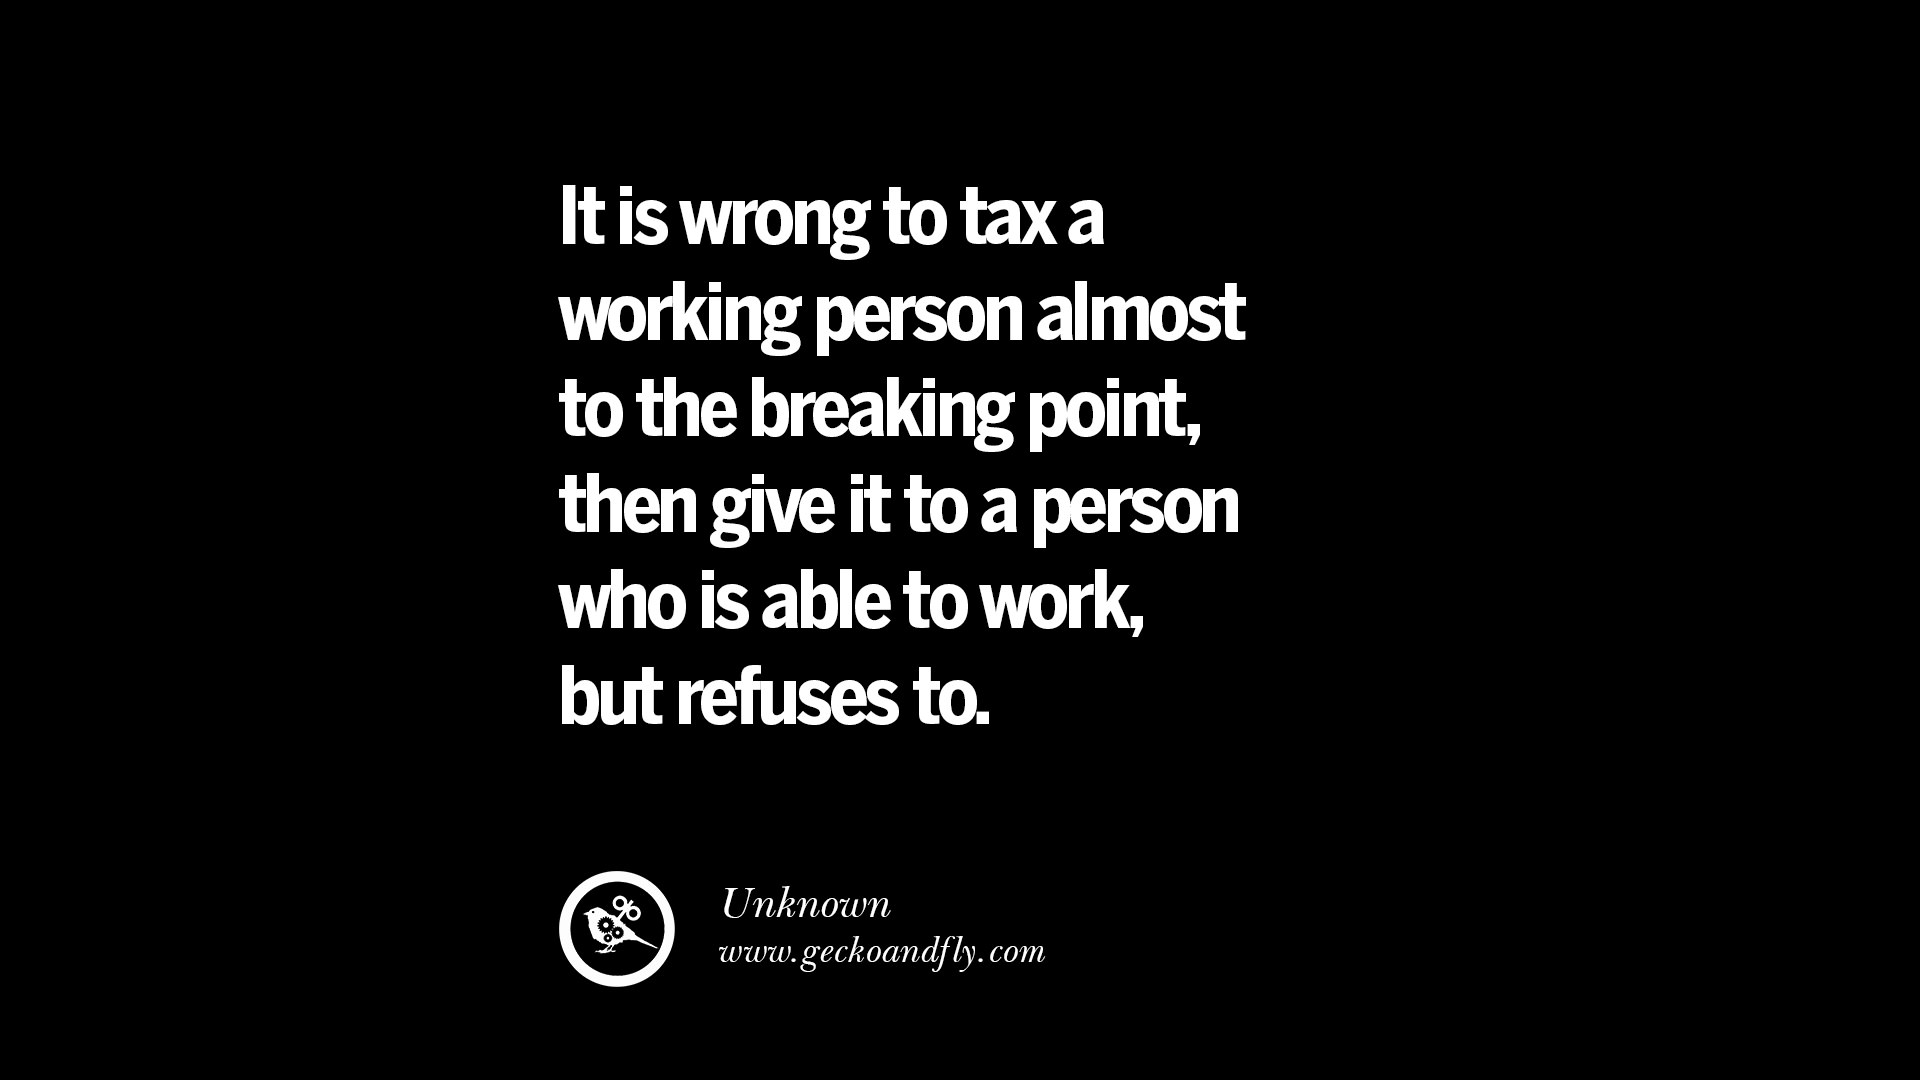 22 Taxing Quotes On The Good, Bad And Evil Of Federal Income Tax